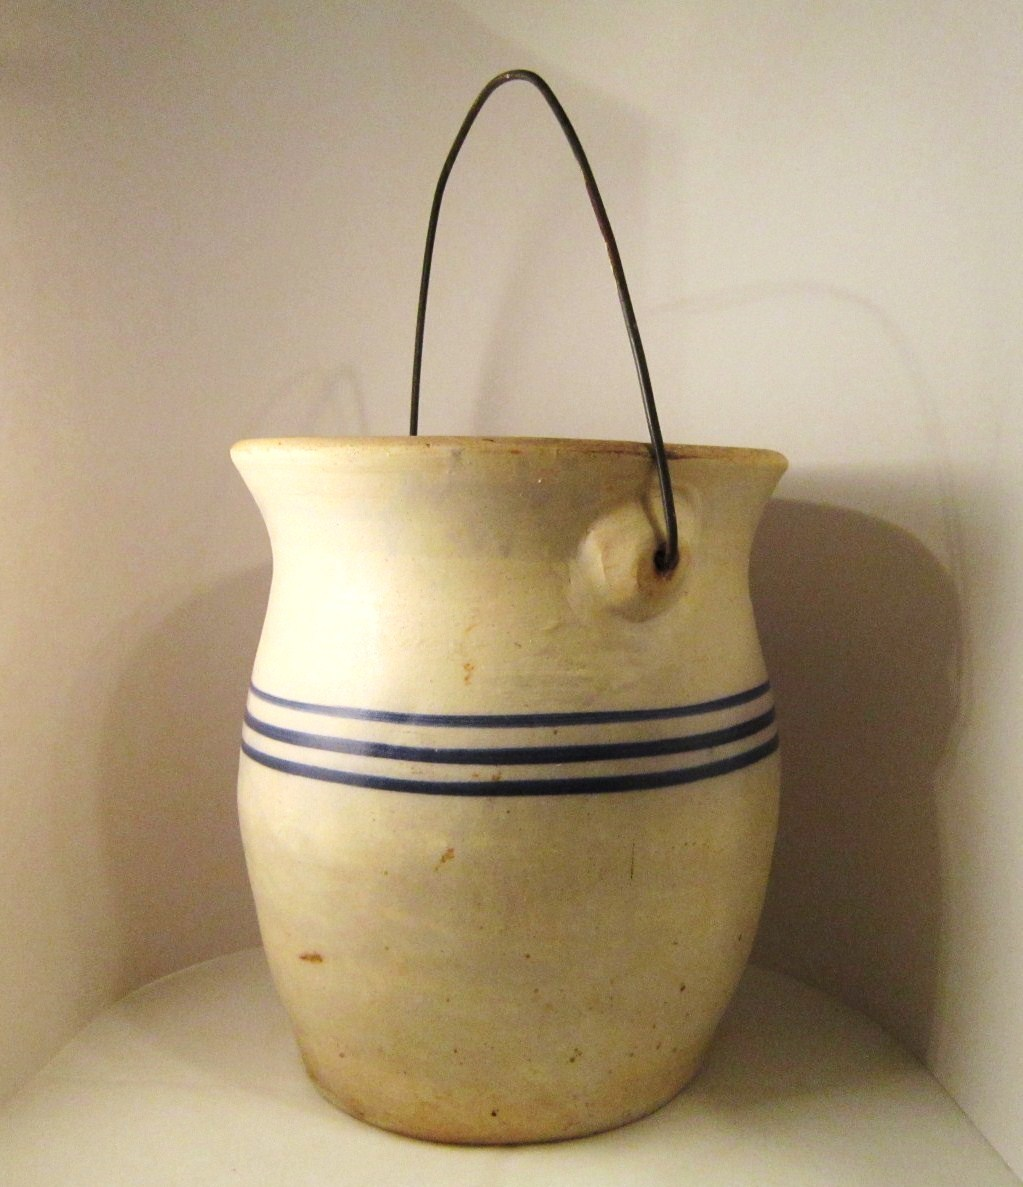 Antique_crock_blue_stripes_bail_01